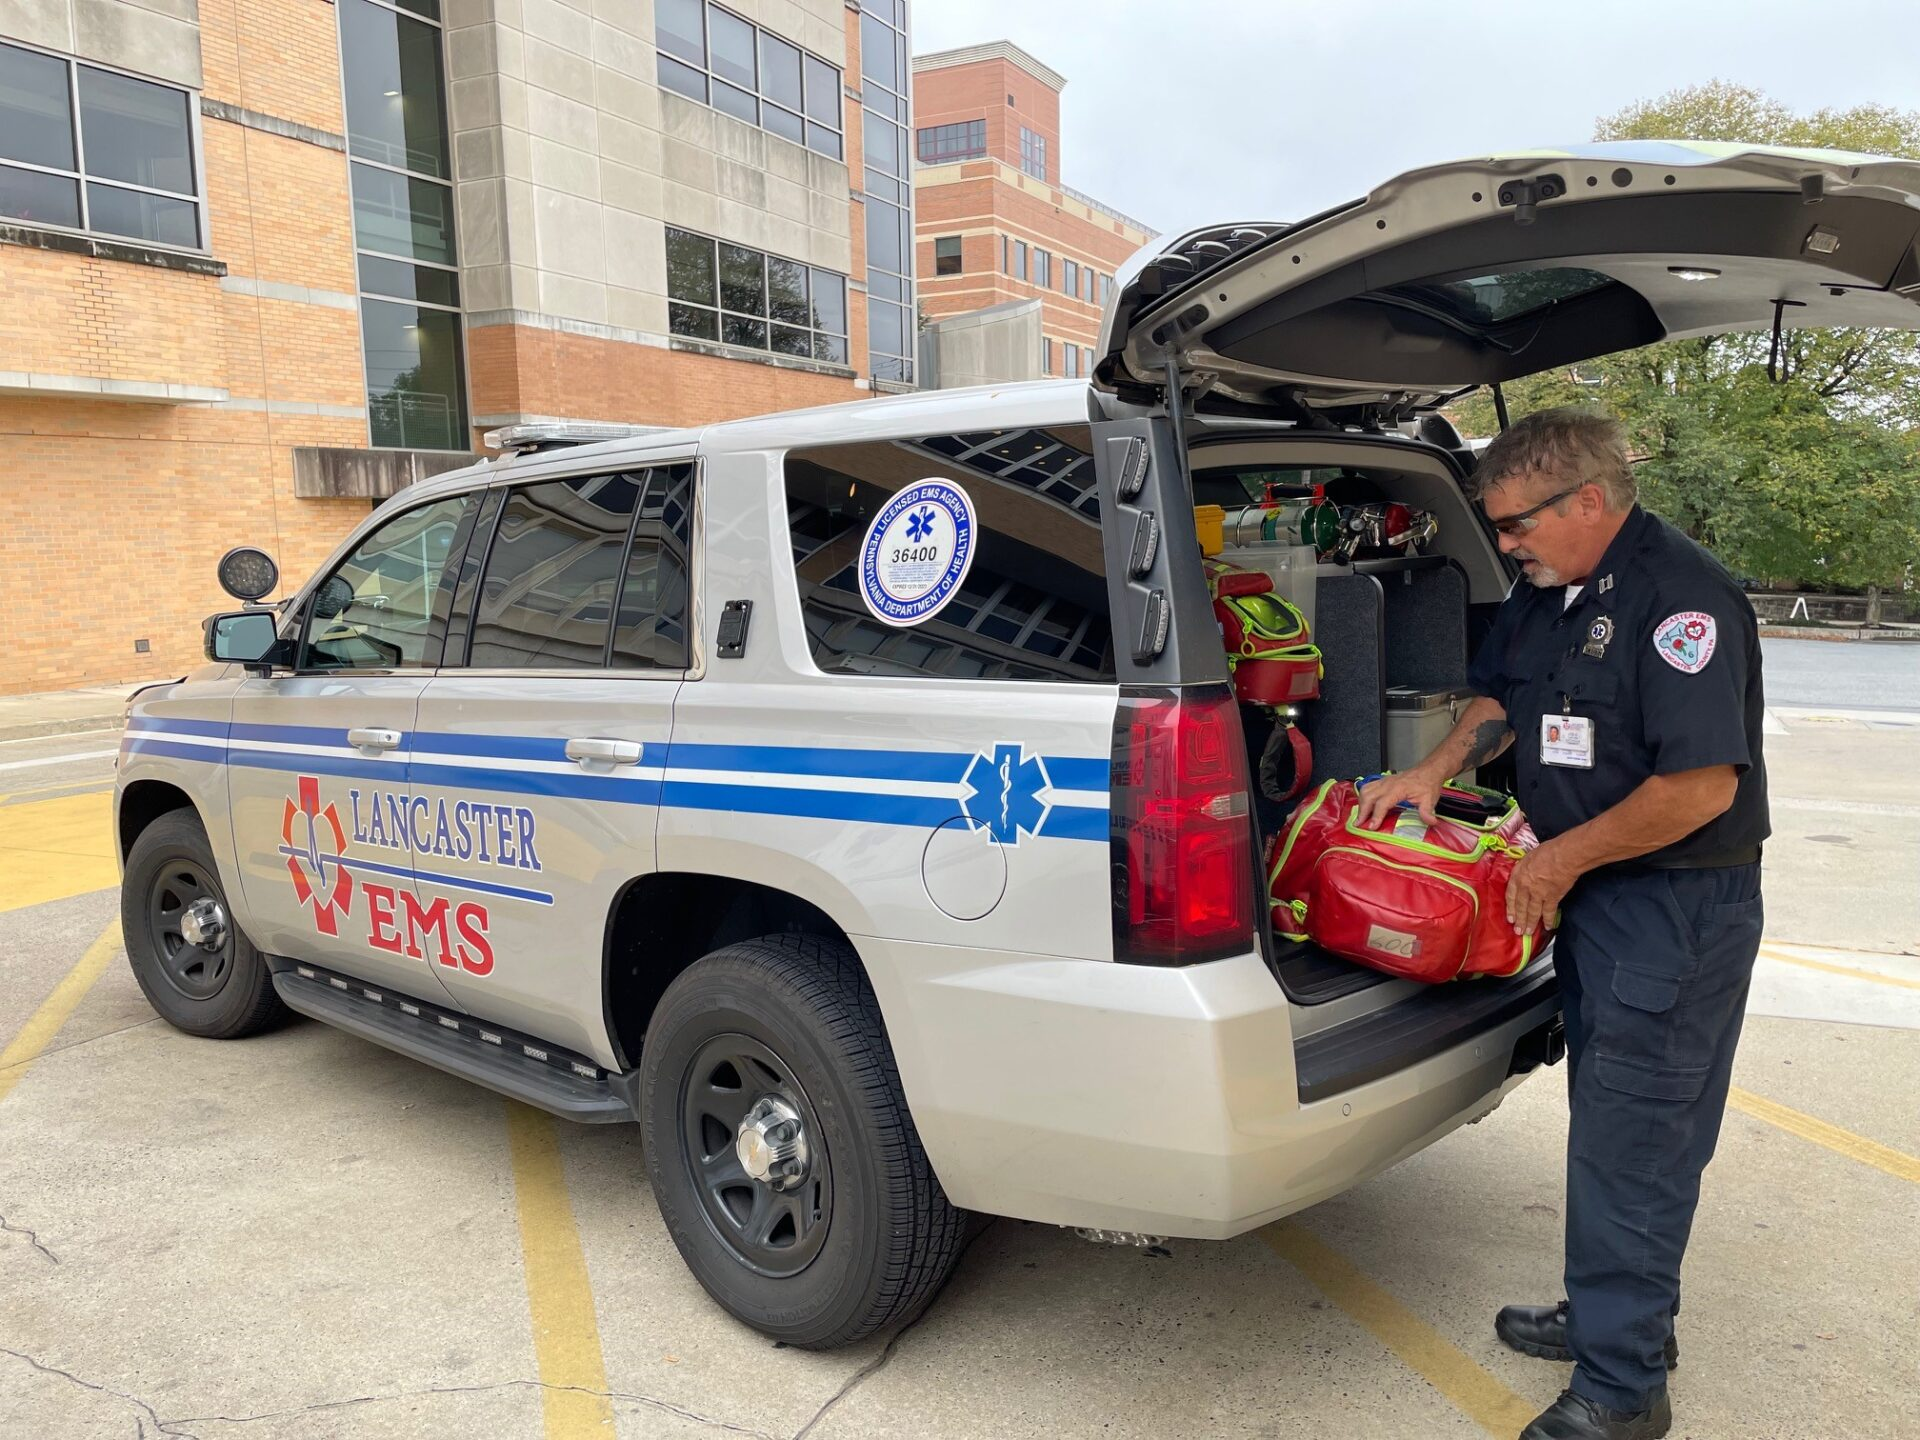 Capt. Joe Carr of Lancaster EMS explains some of the supplies that paramedics use during a tour on Tuesday, Oct. 5, 2021. (Photo: Kyle Gamble)